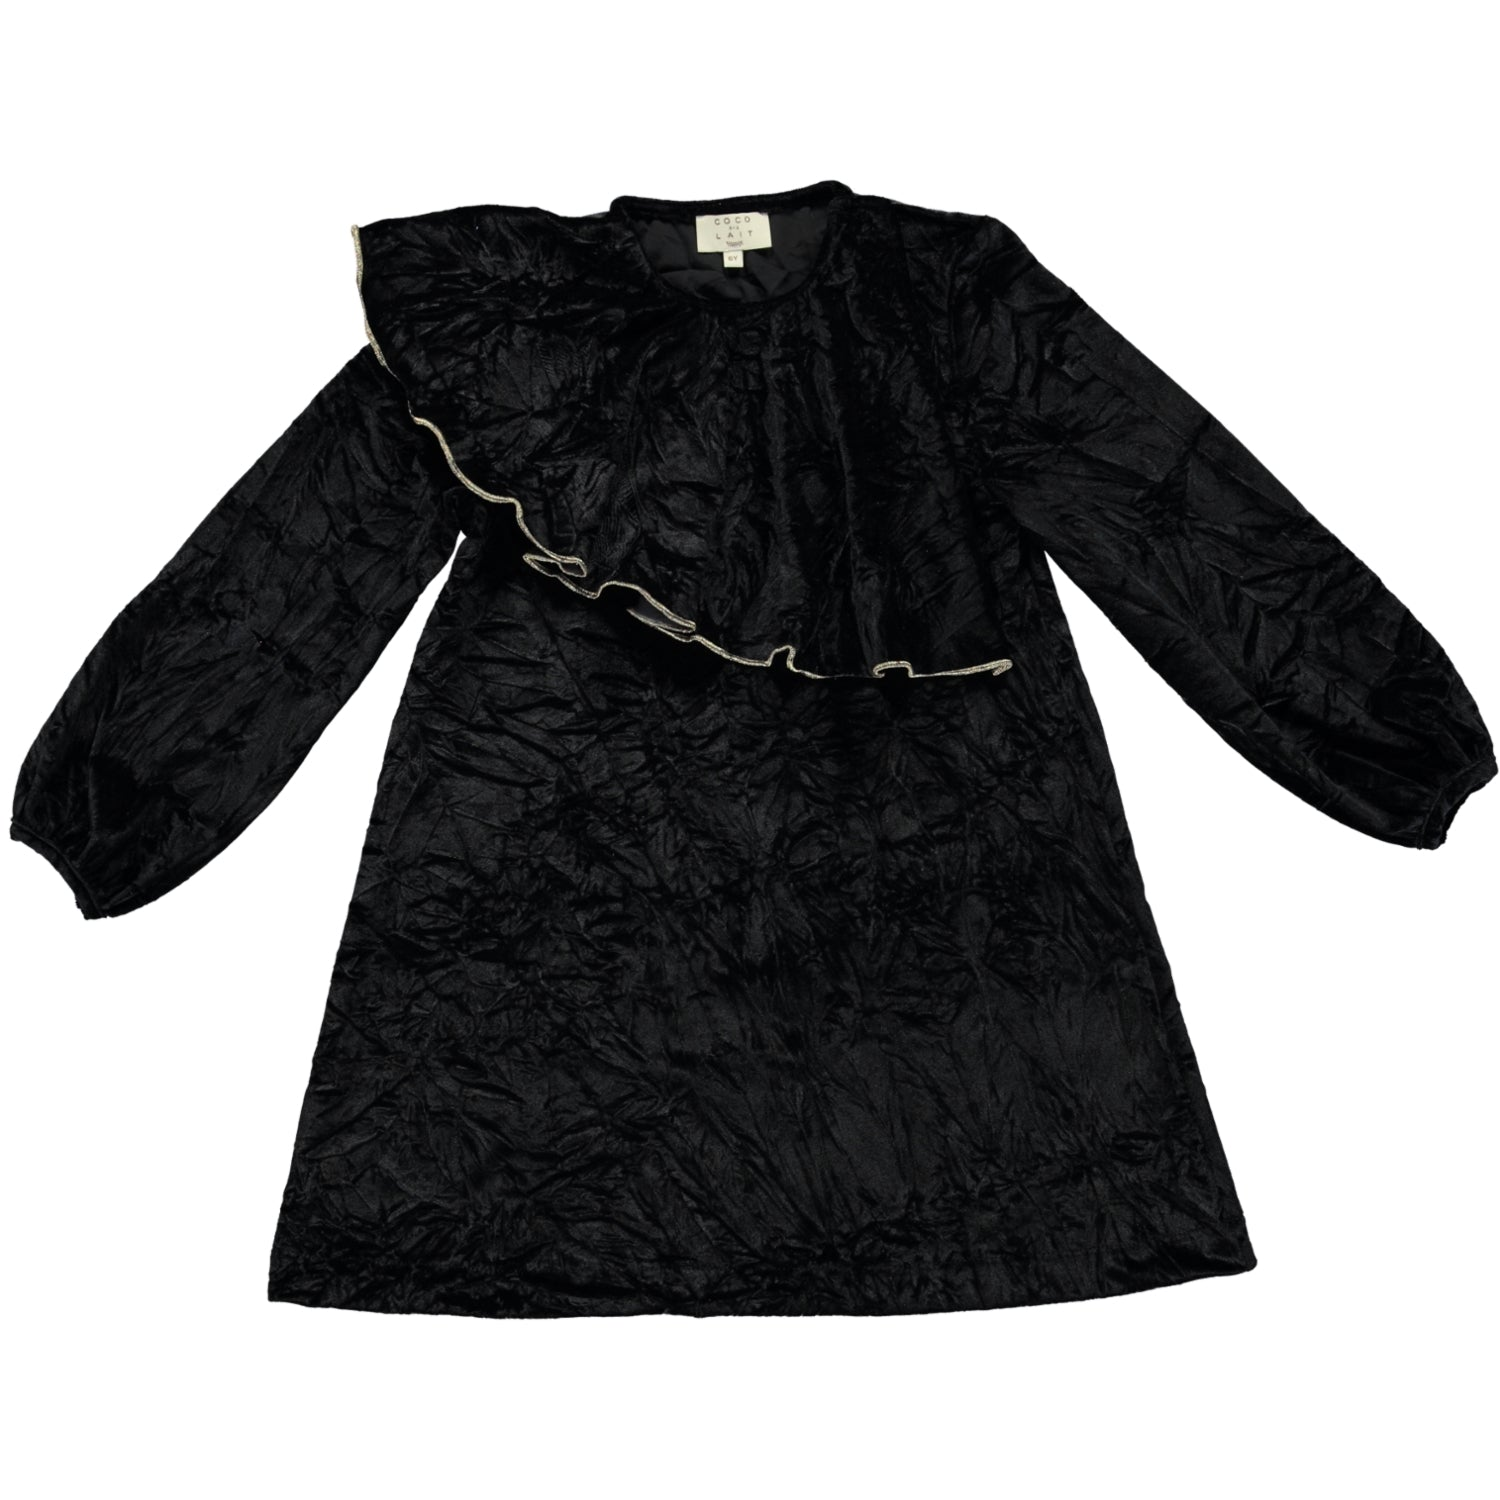 Load image into Gallery viewer, Coco Au Lait BLACK VELVET DRESS Dress Caviar